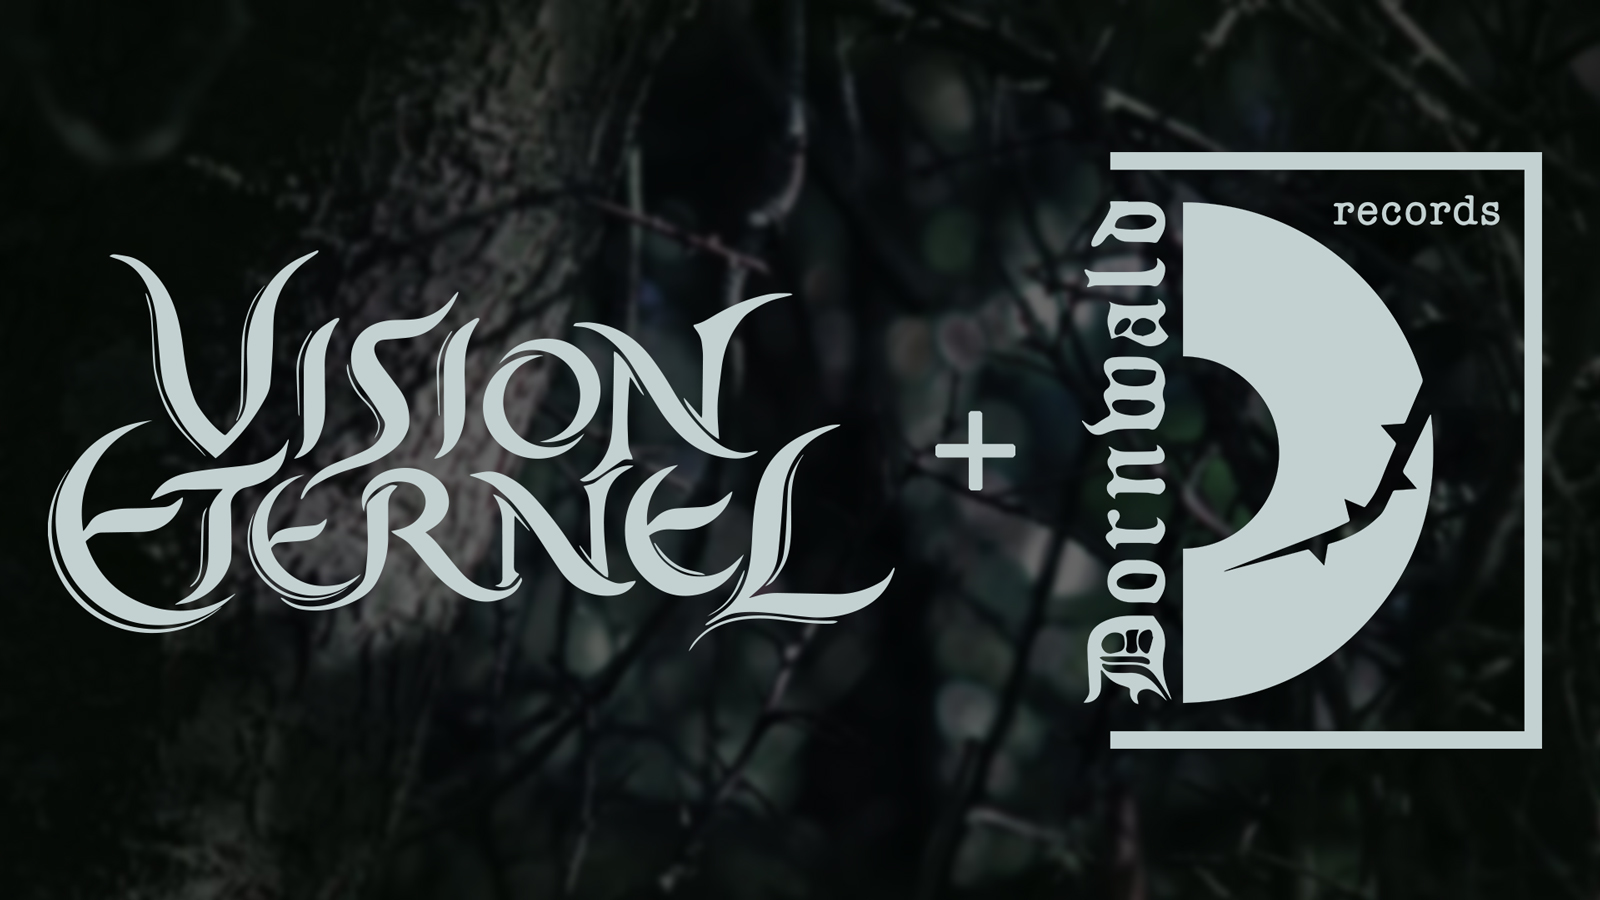 Vision Eternel To Collaborate With Dornwald Records